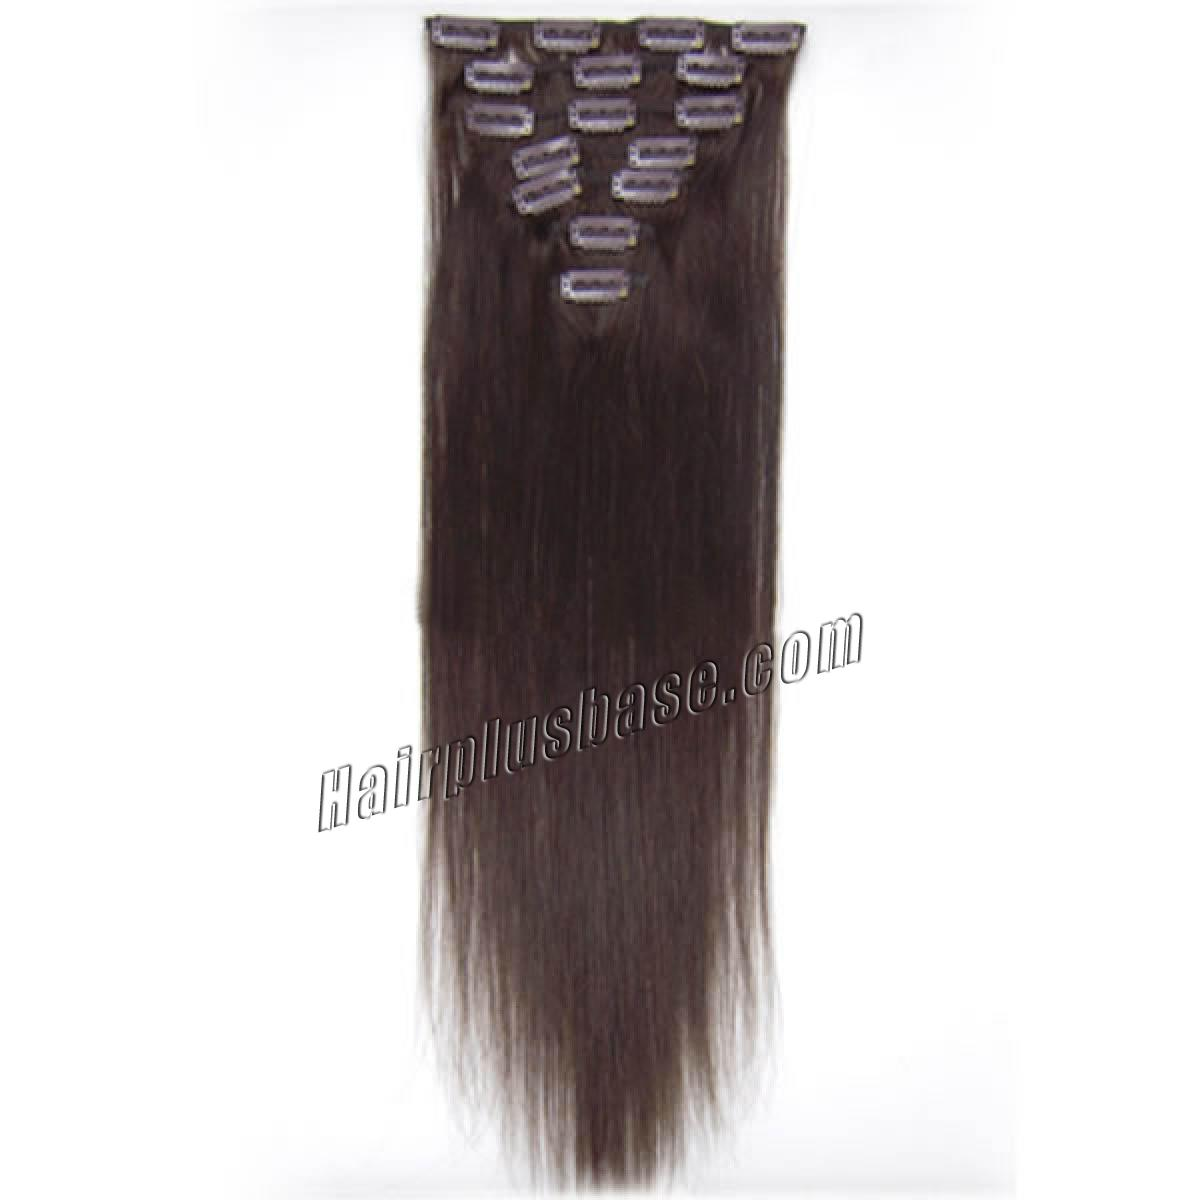 15 inch 2 dark brown clip in human hair extensions 7pcs 15 inch 2 dark brown clip in human hair extensions 7pcs no 2 pmusecretfo Choice Image